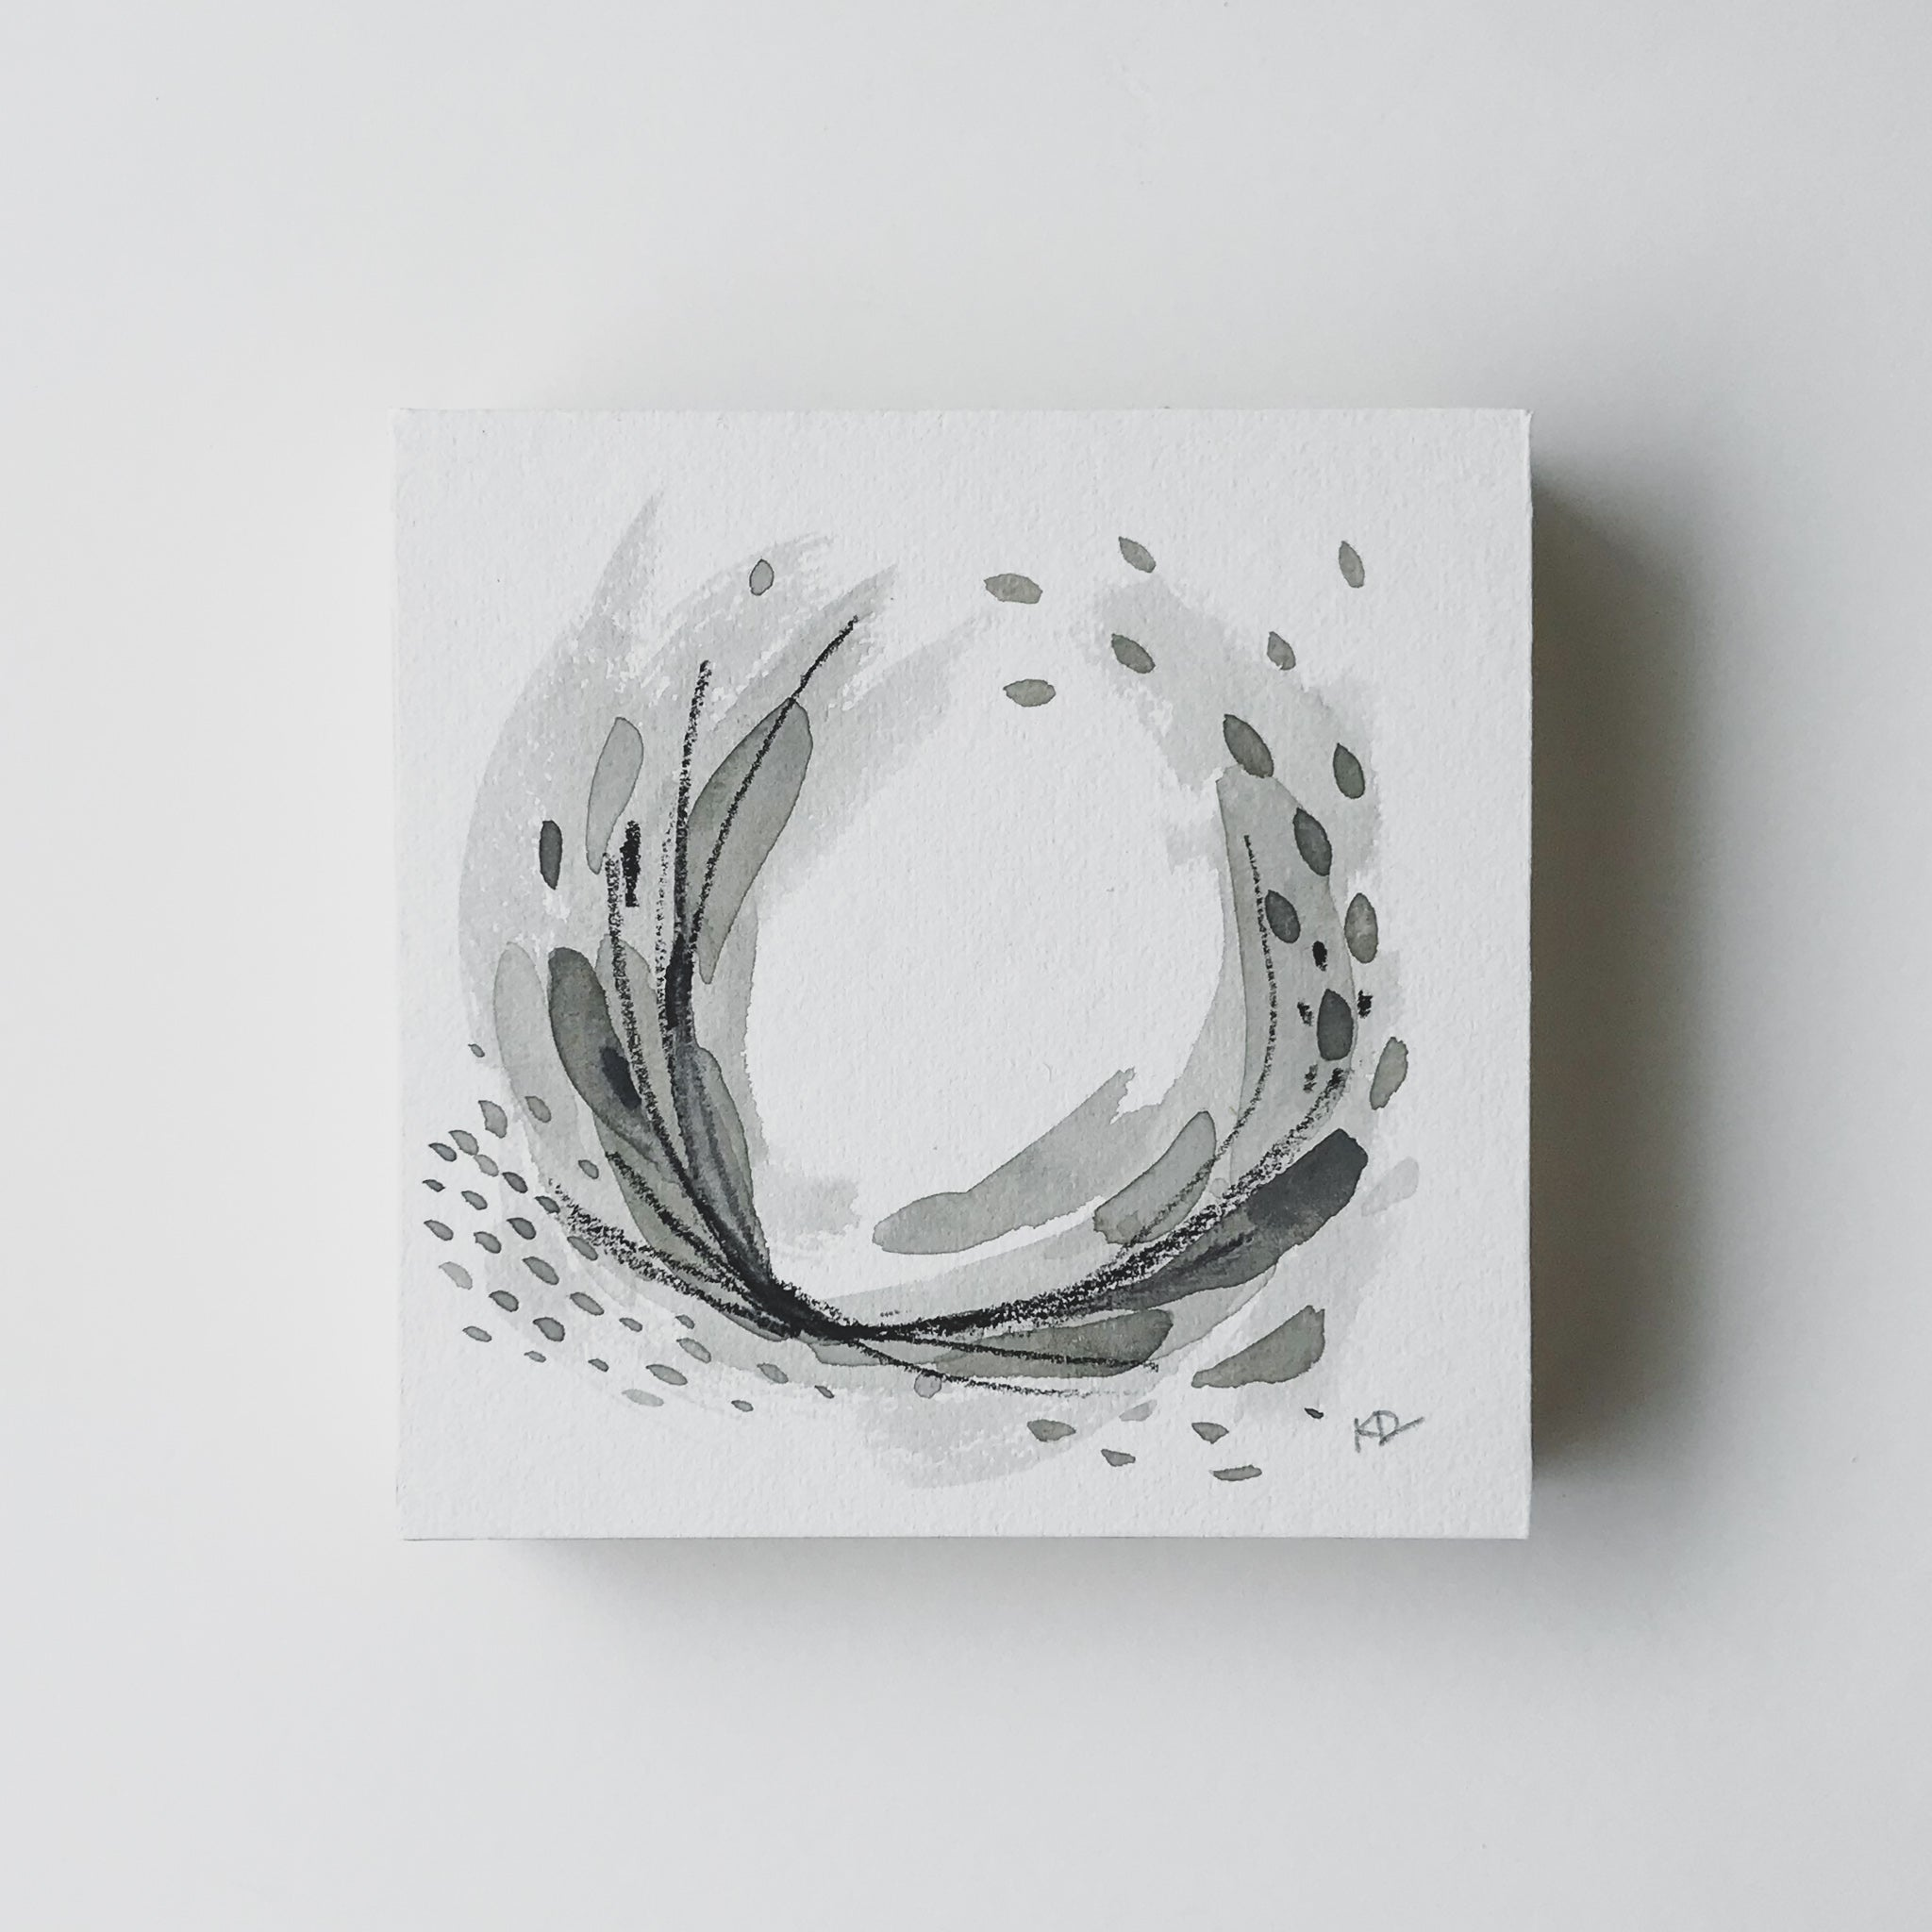 Neutral Series 25 - Minimal Abstract art mounted to wood block, ready to hang or stand. by kait dewolff @kaitcreative $72CAD